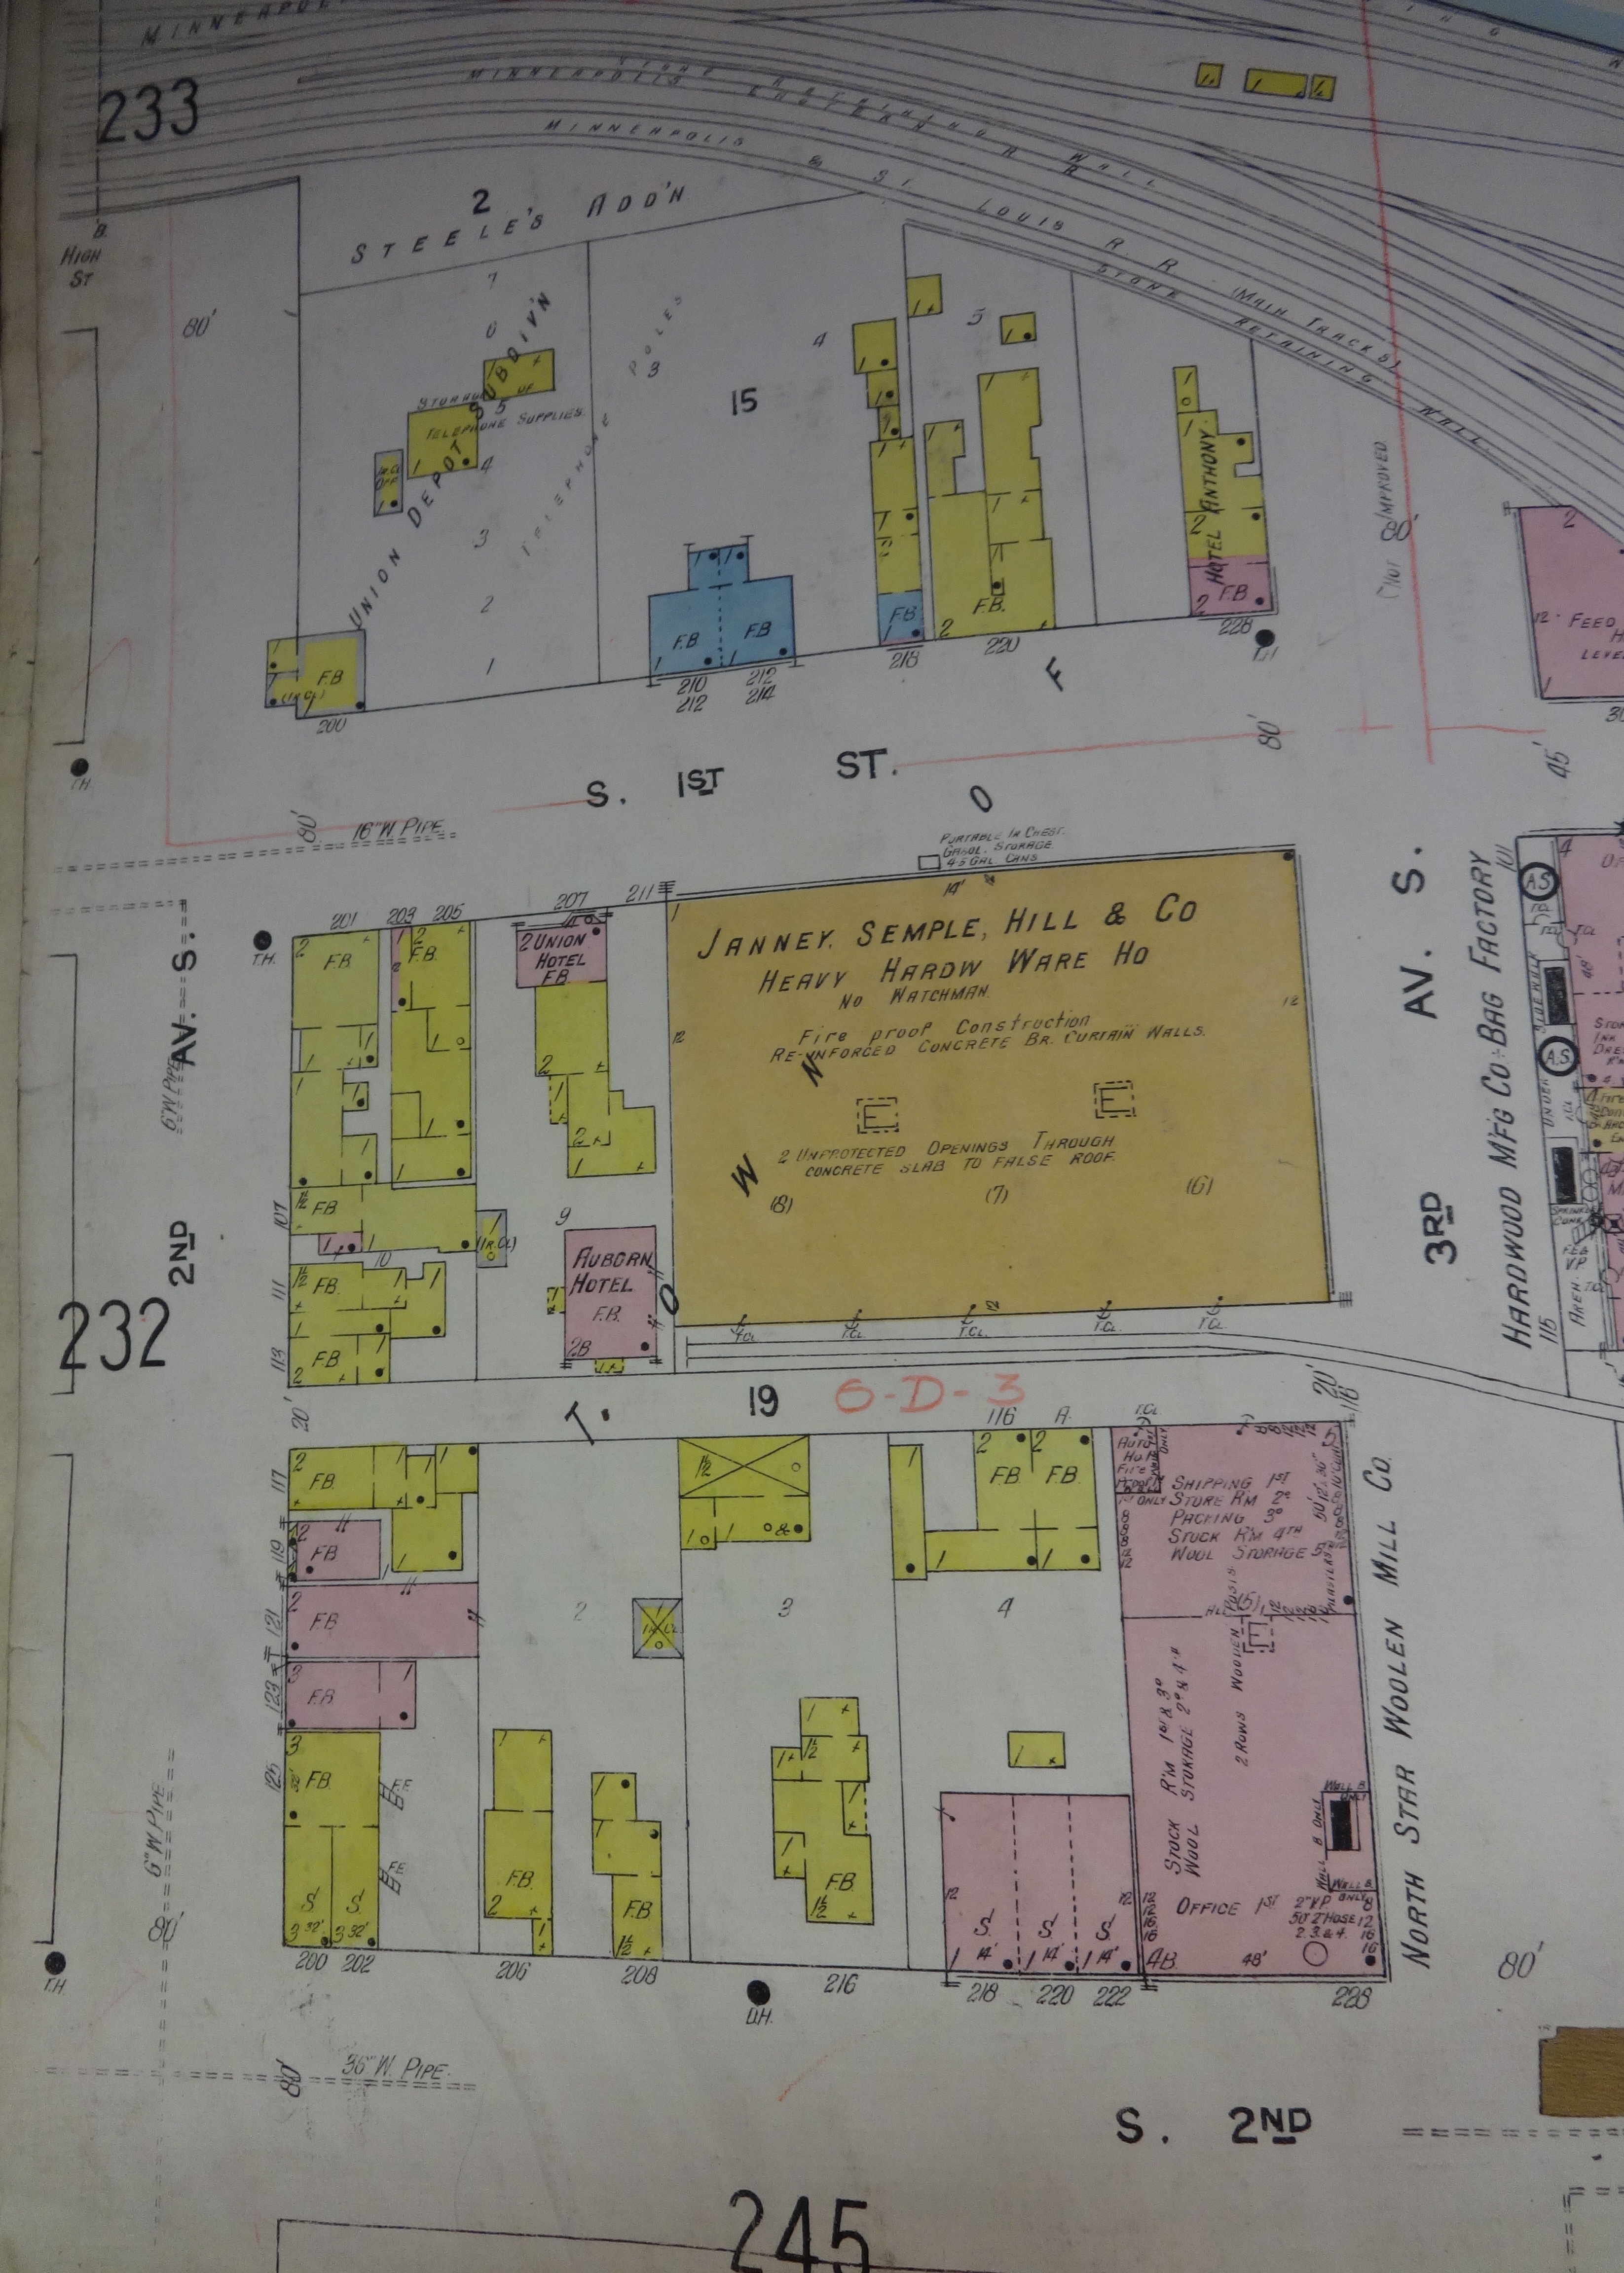 Sanborn Map 1st Street, tower archives, Female Boarding